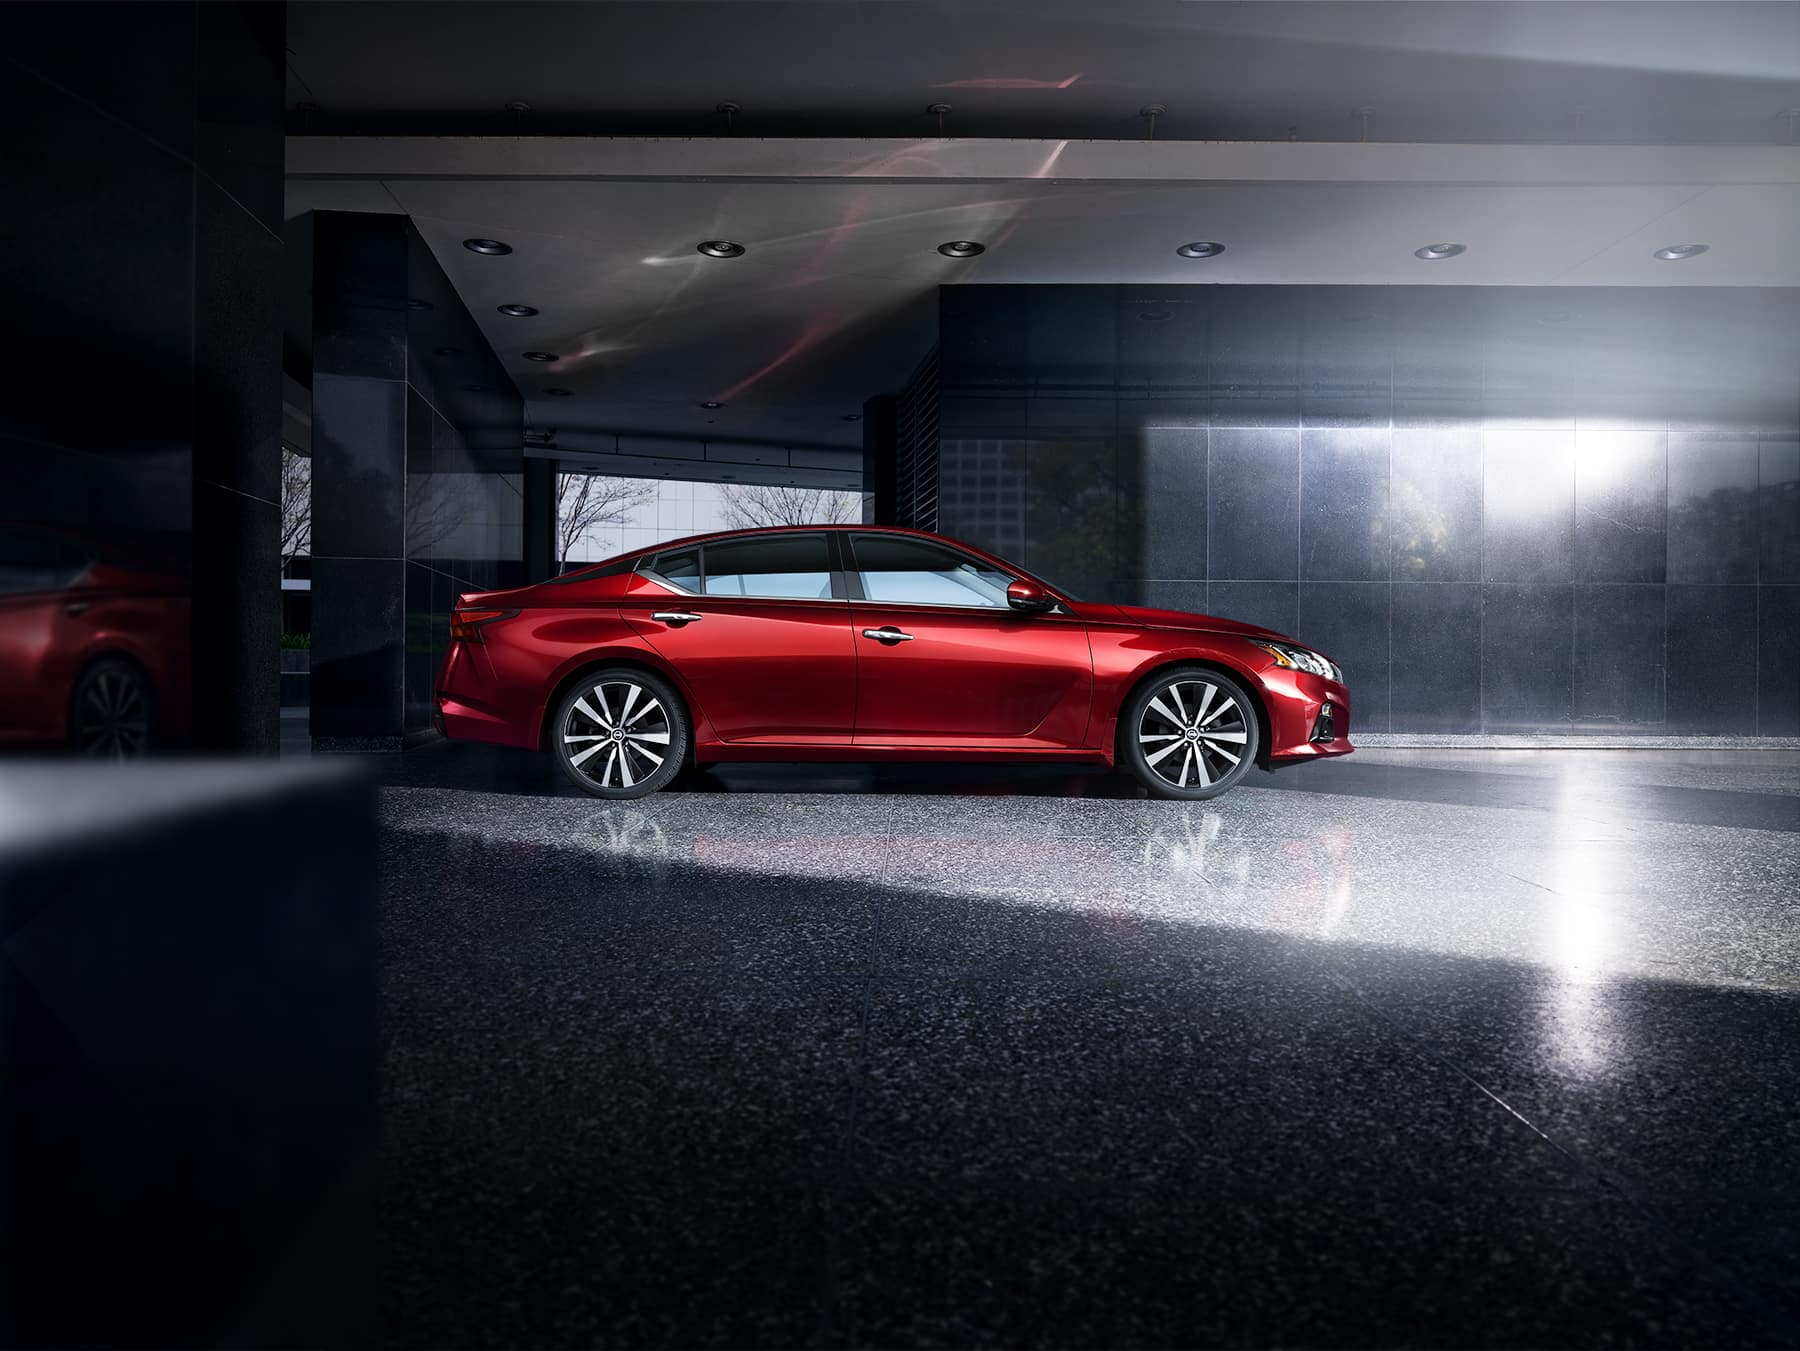 Model Features of the 2020 Nissan Altima at Hanover Nissan of Hanover | red nissan altima park inside a building